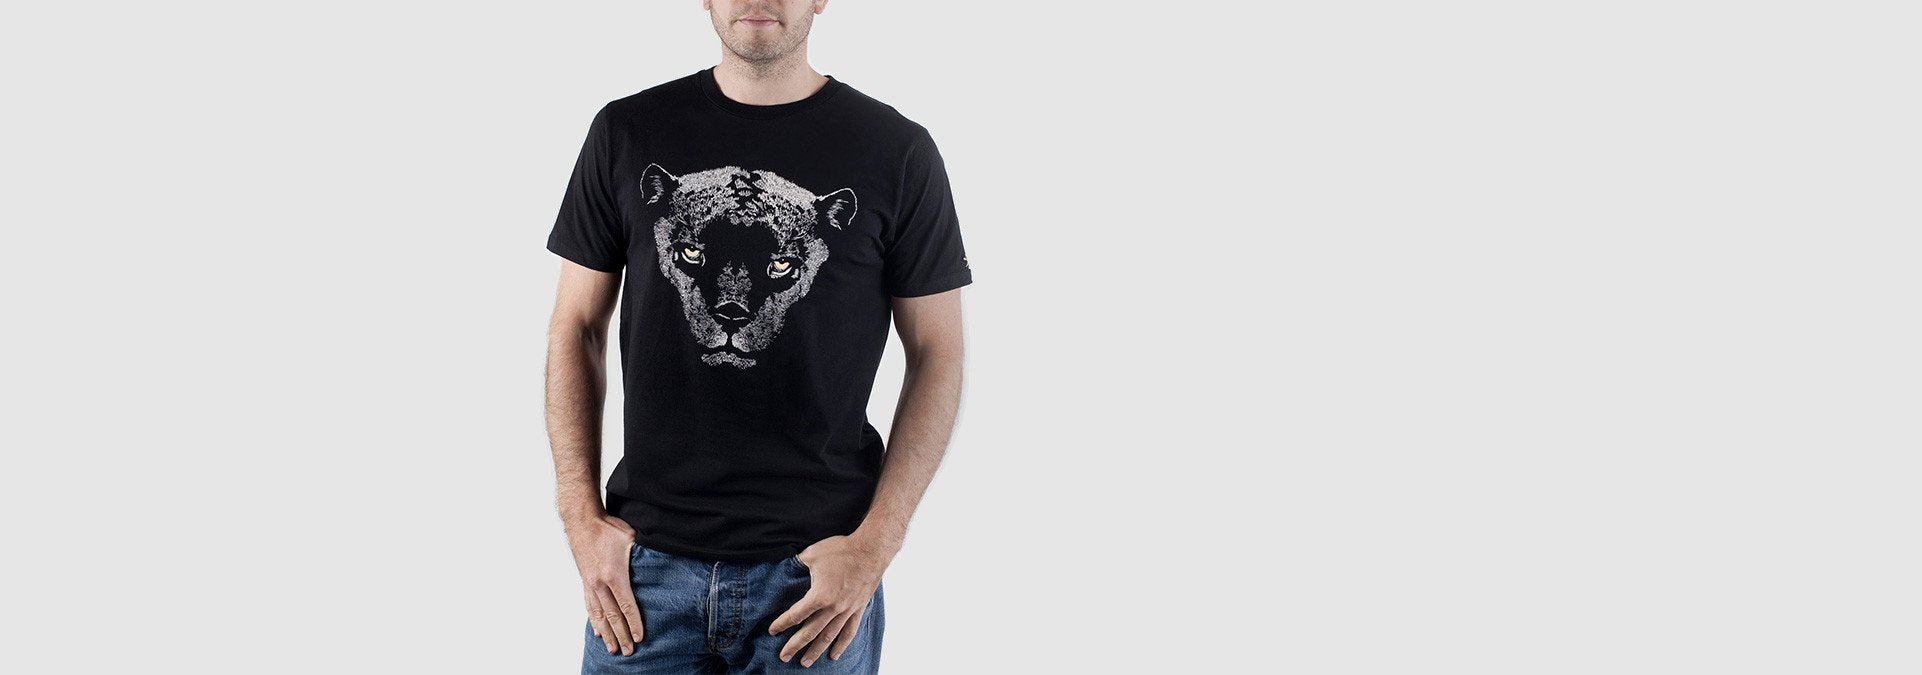 Panther Organic Cotton T-Shirt Black